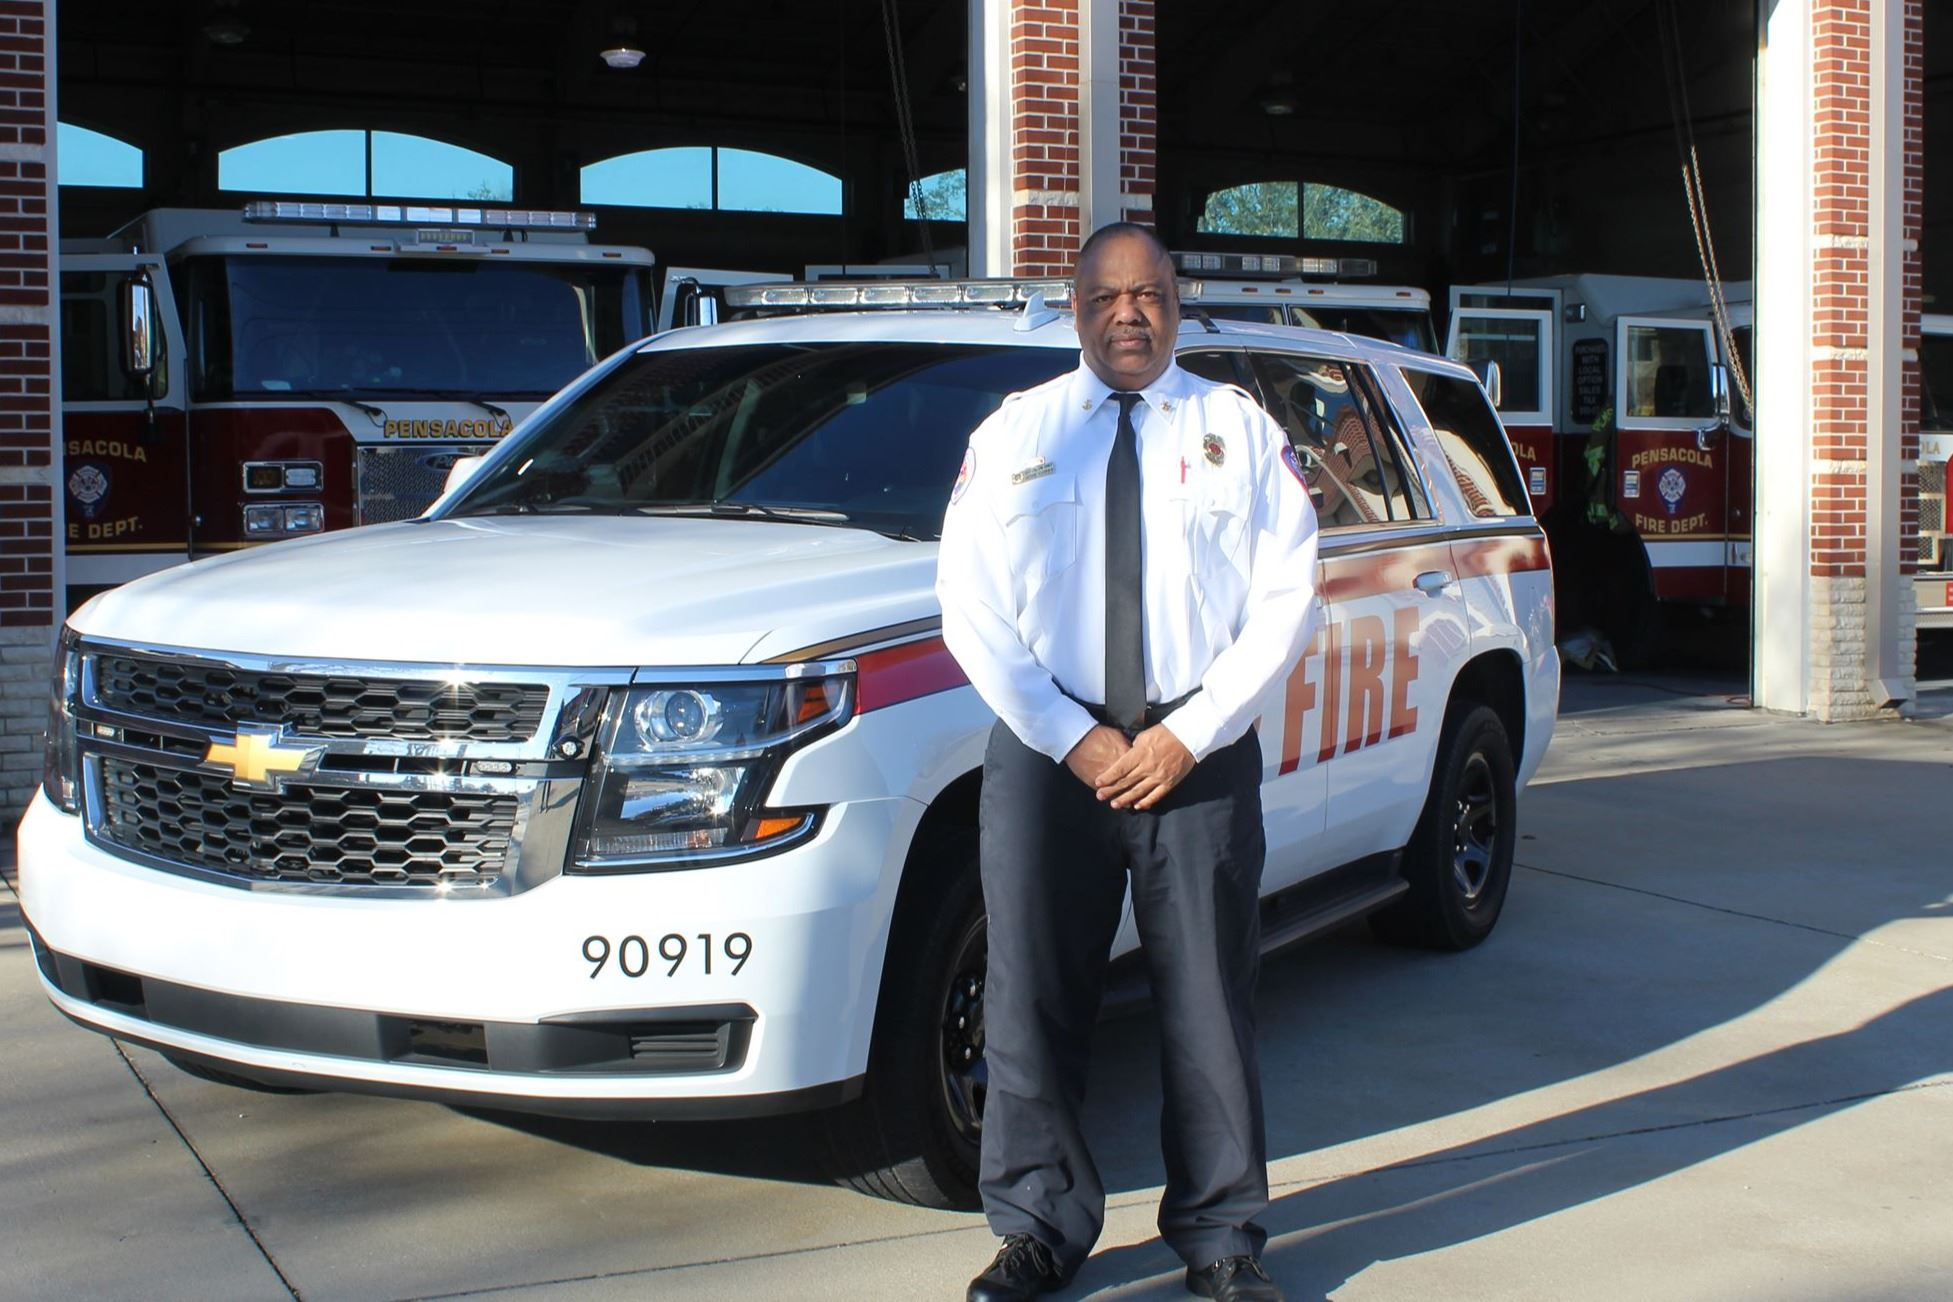 C Watch Battalion Chief Jose Cobbs 2